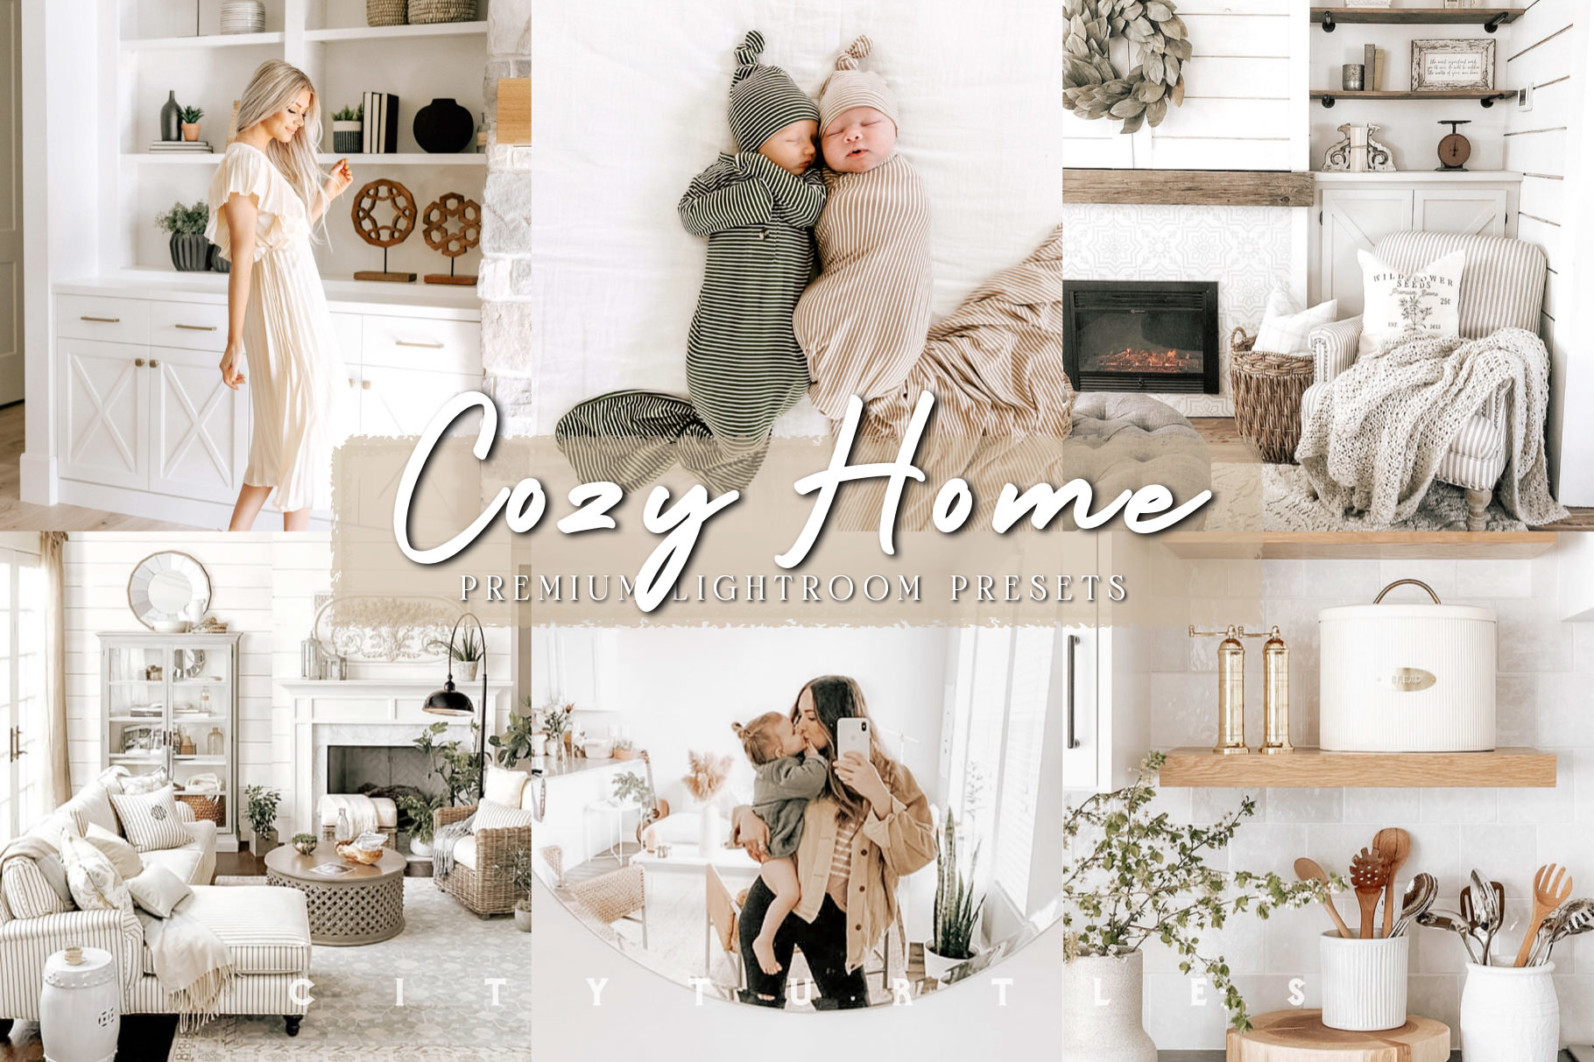 THE LIGHT & AIRY BUNDLE - Natural Clean Bright Lightroom Presets for Desktop + Mobile - cozy home bright clean indoor film blogger instagram lifestyle mobile filters neutral warm tones 1 -